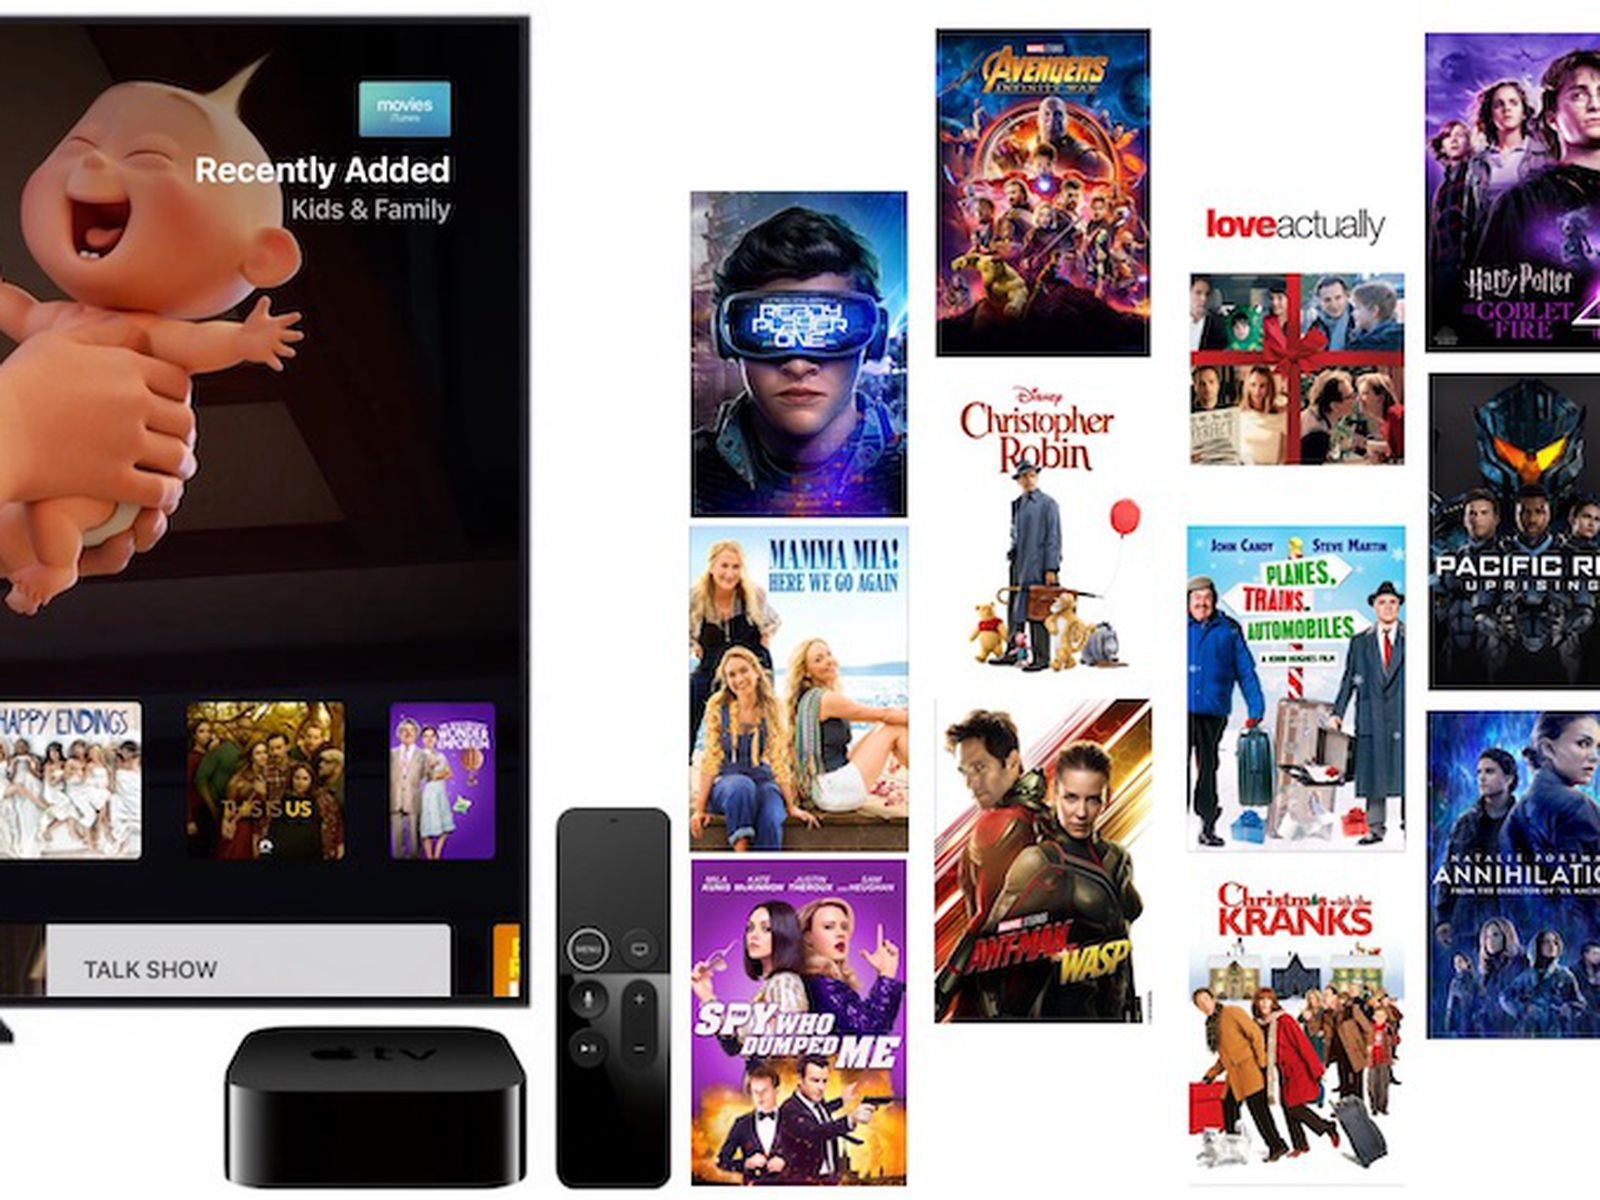 Black Friday 2018 Itunes Discounts Holiday Classics And Over 150 4k Films To Under 10 New Disney Films For 15 Macrumors